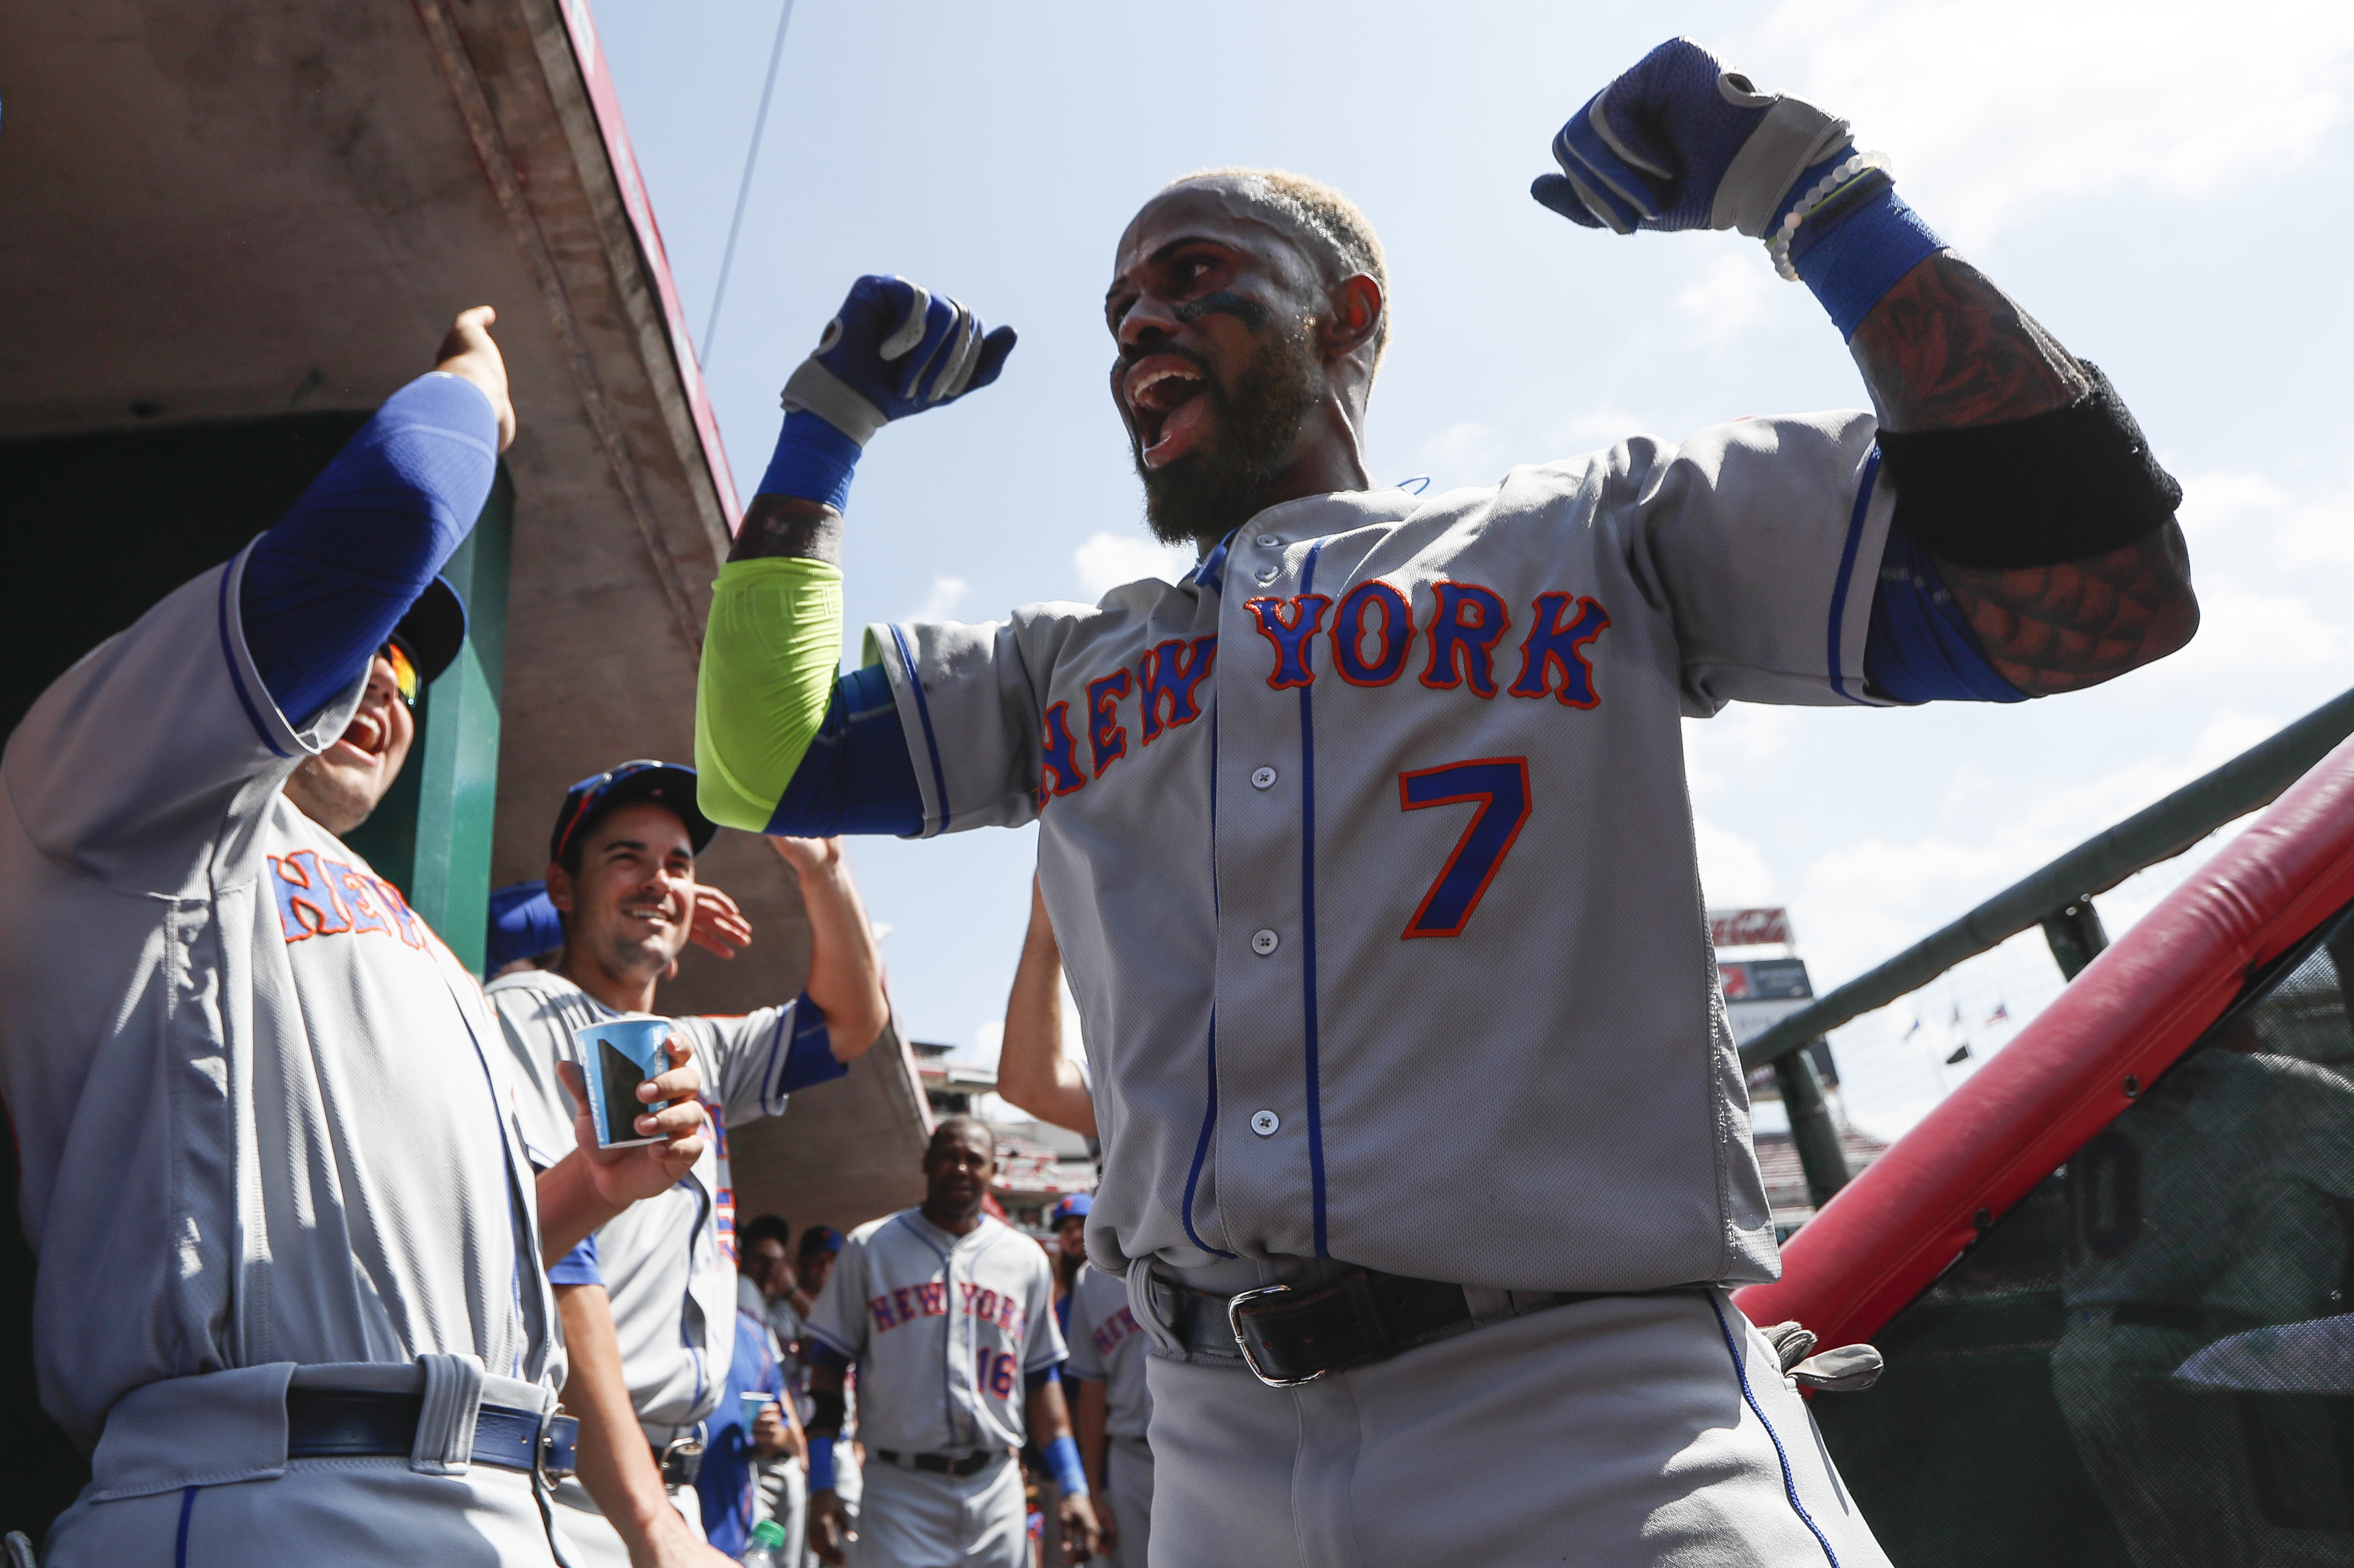 New York Mets' Jose Reyes celebrates in the dugout after hitting a solo home run off Cincinnati Reds starting pitcher Anthony DeSclafani in the first inning of a baseball game, Wednesday, Sept. 7, 2016, in Cincinnati. (AP Photo/John Minchillo)